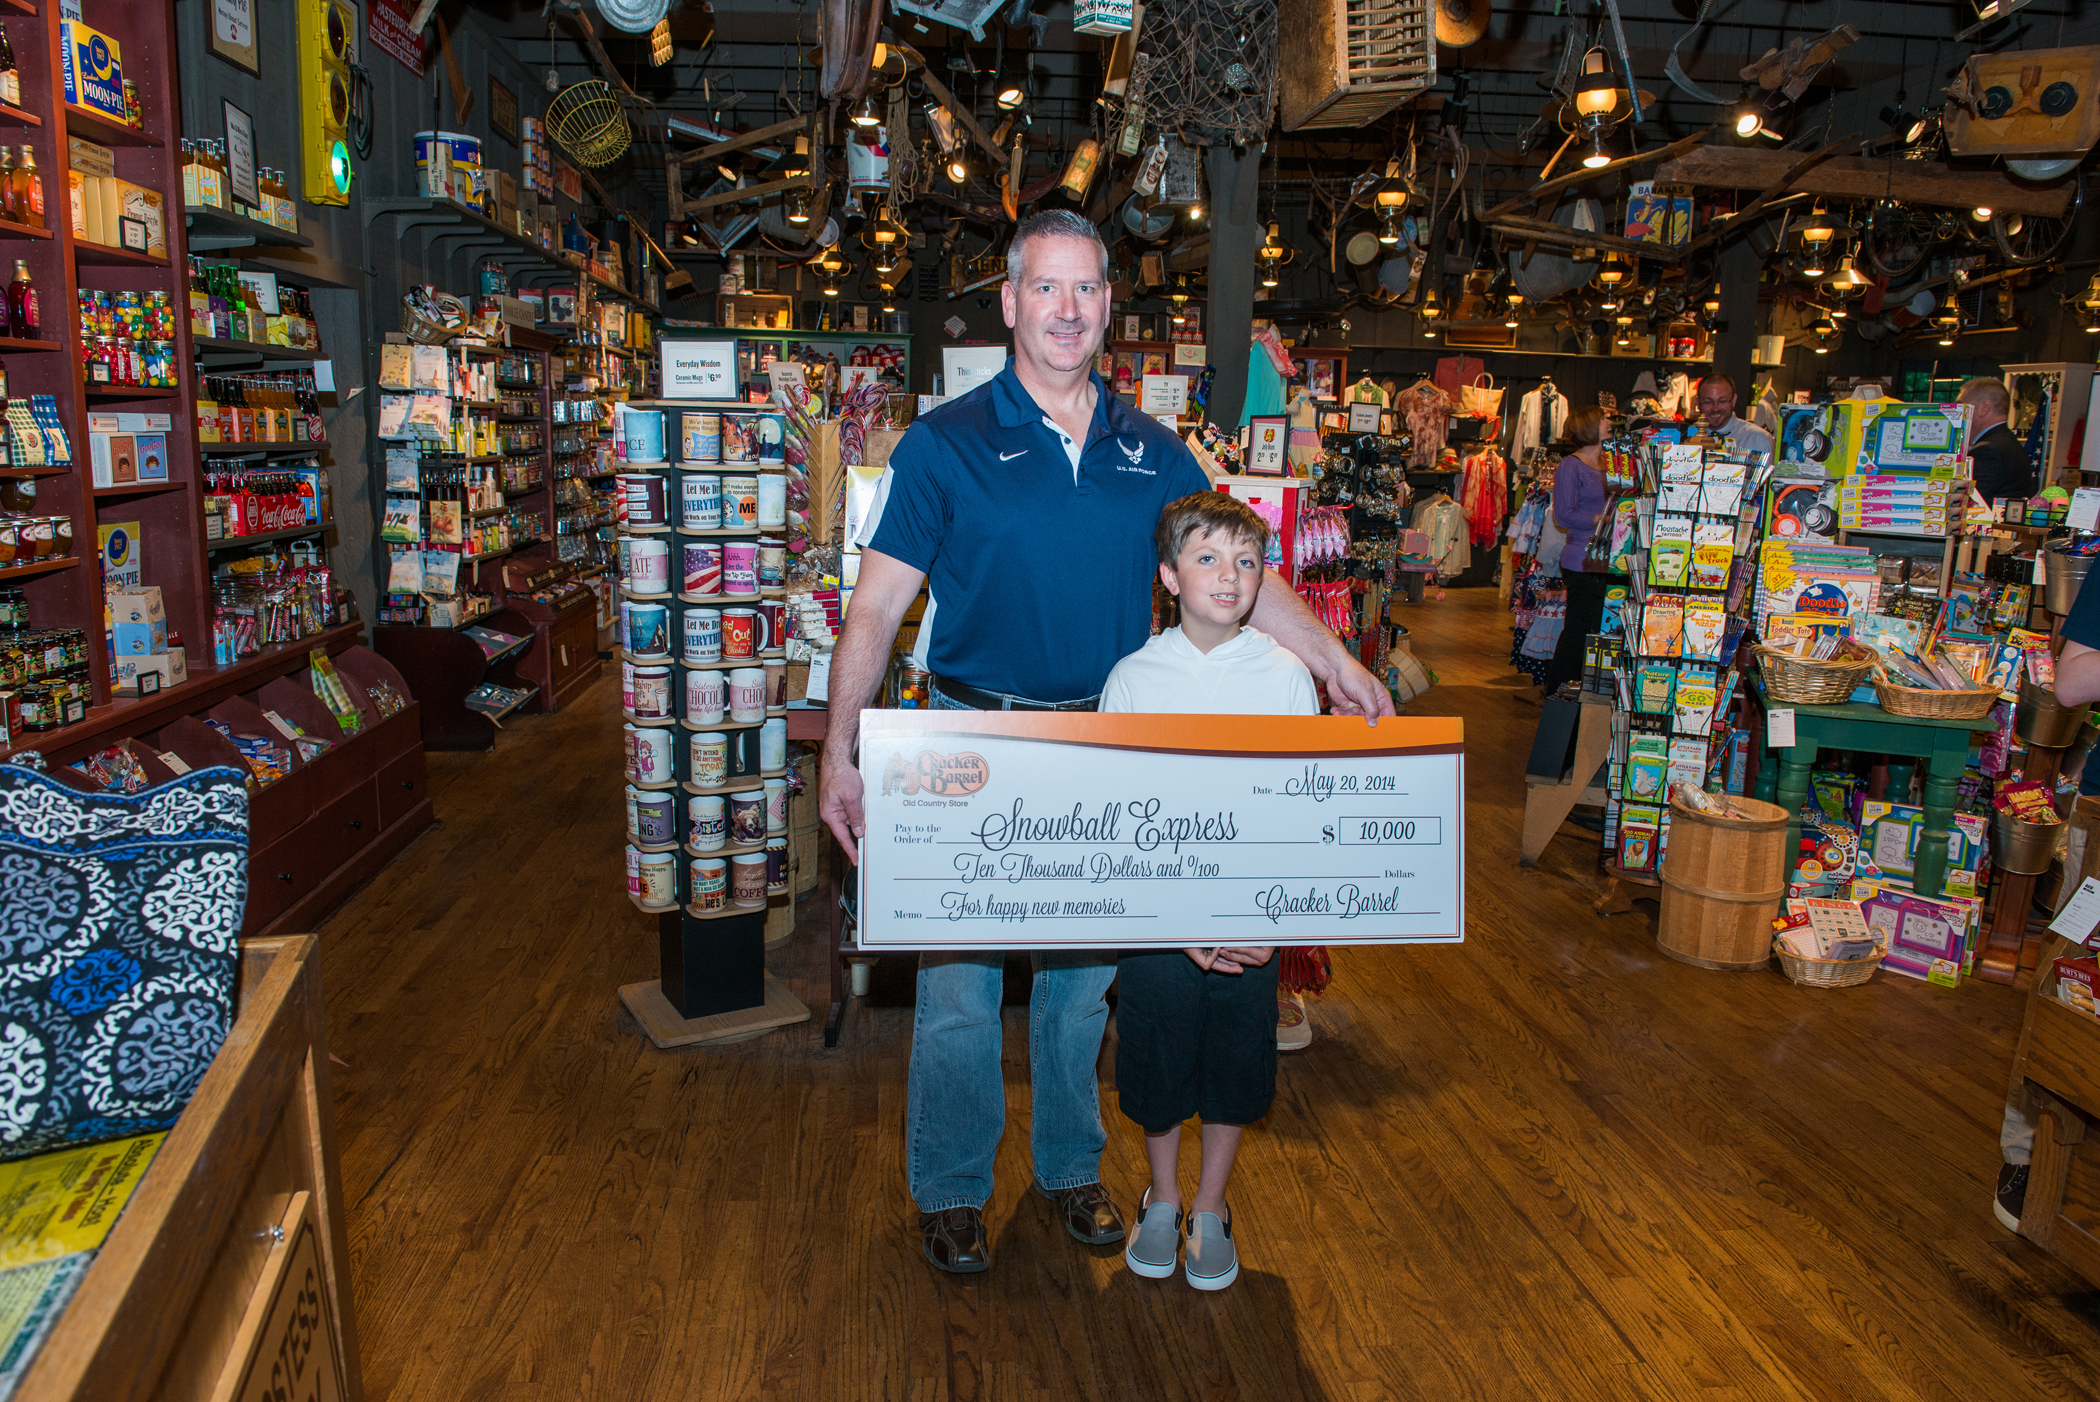 Snowball Express assists military families who have lost a parent killed during active duty. Accepting the Cracker Barrel contribution are Lt. COL. Frank Daily and eight year old Myles Eckert. Last February, Myles found a $20 bill in this Maumee, Ohio Cracker Barrel store's parking lot and generously gave the money to Lt. Col. Dailey, who was in the restaurant that day with his family. Myles father was killed by a roadside bomb in 2005. (Photo: Business Wire)